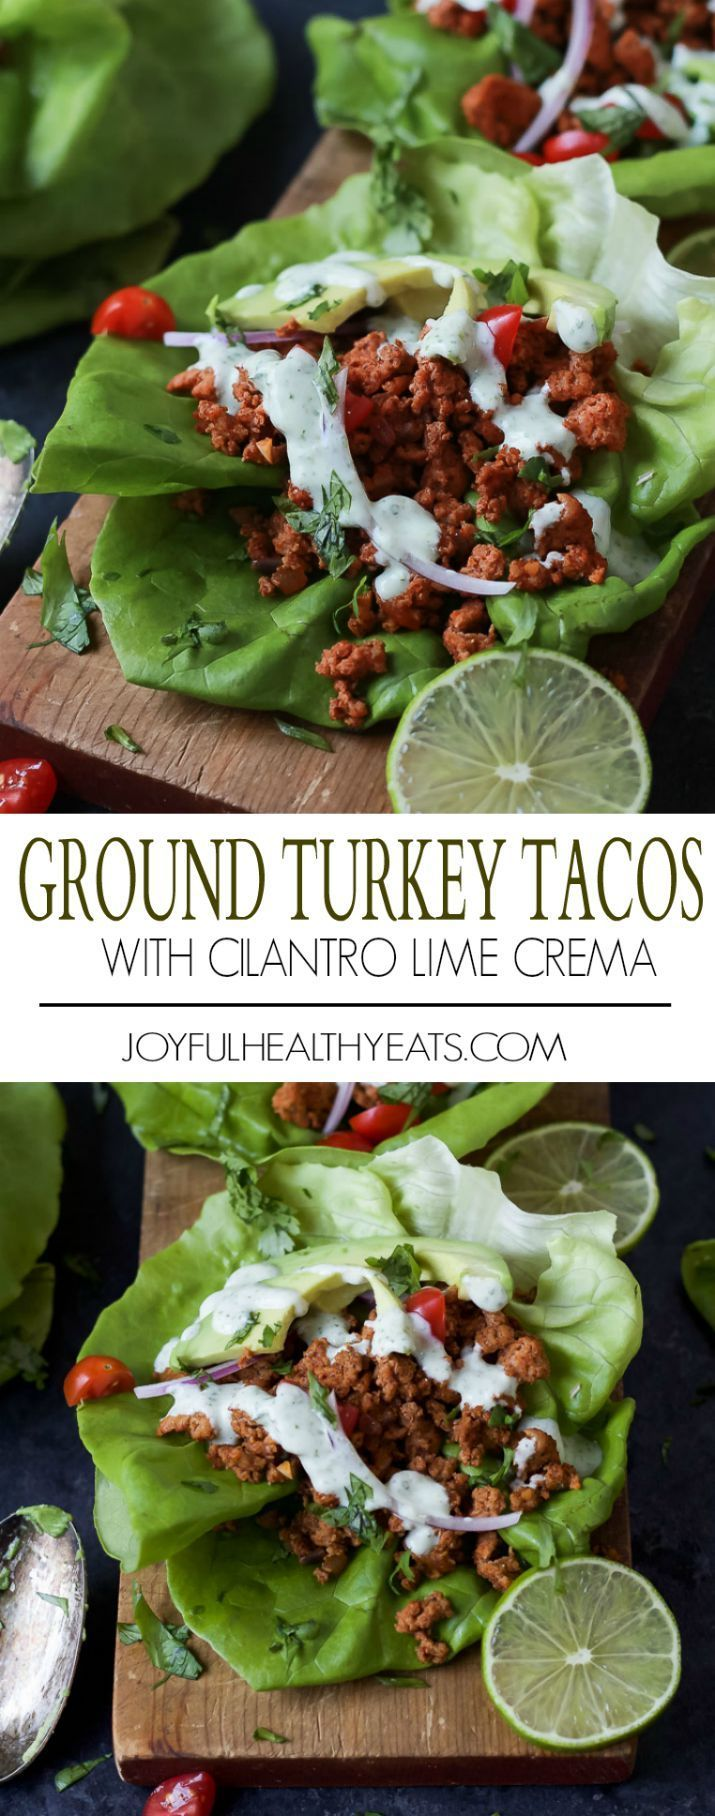 Ground Turkey Tacos in Lettuce Wraps topped with a fresh Cilantro Lime Crema - a great healthy weeknight meal option that's full of flavor and gluten free!   joyfulhealthyeats.com